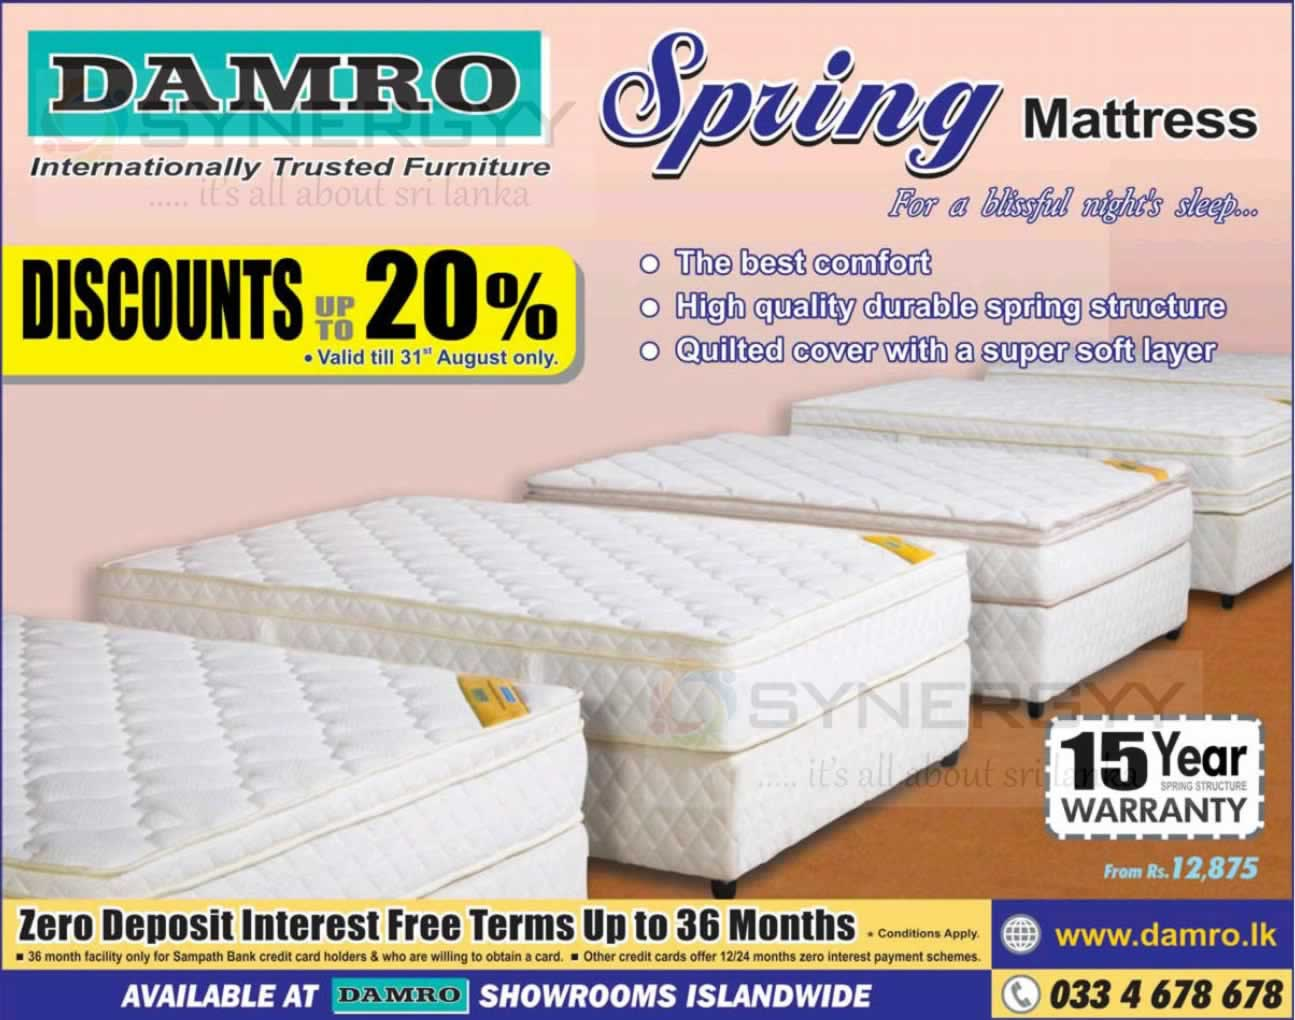 20 % off for damro mattress today synergyy 20 % off for damro mattress